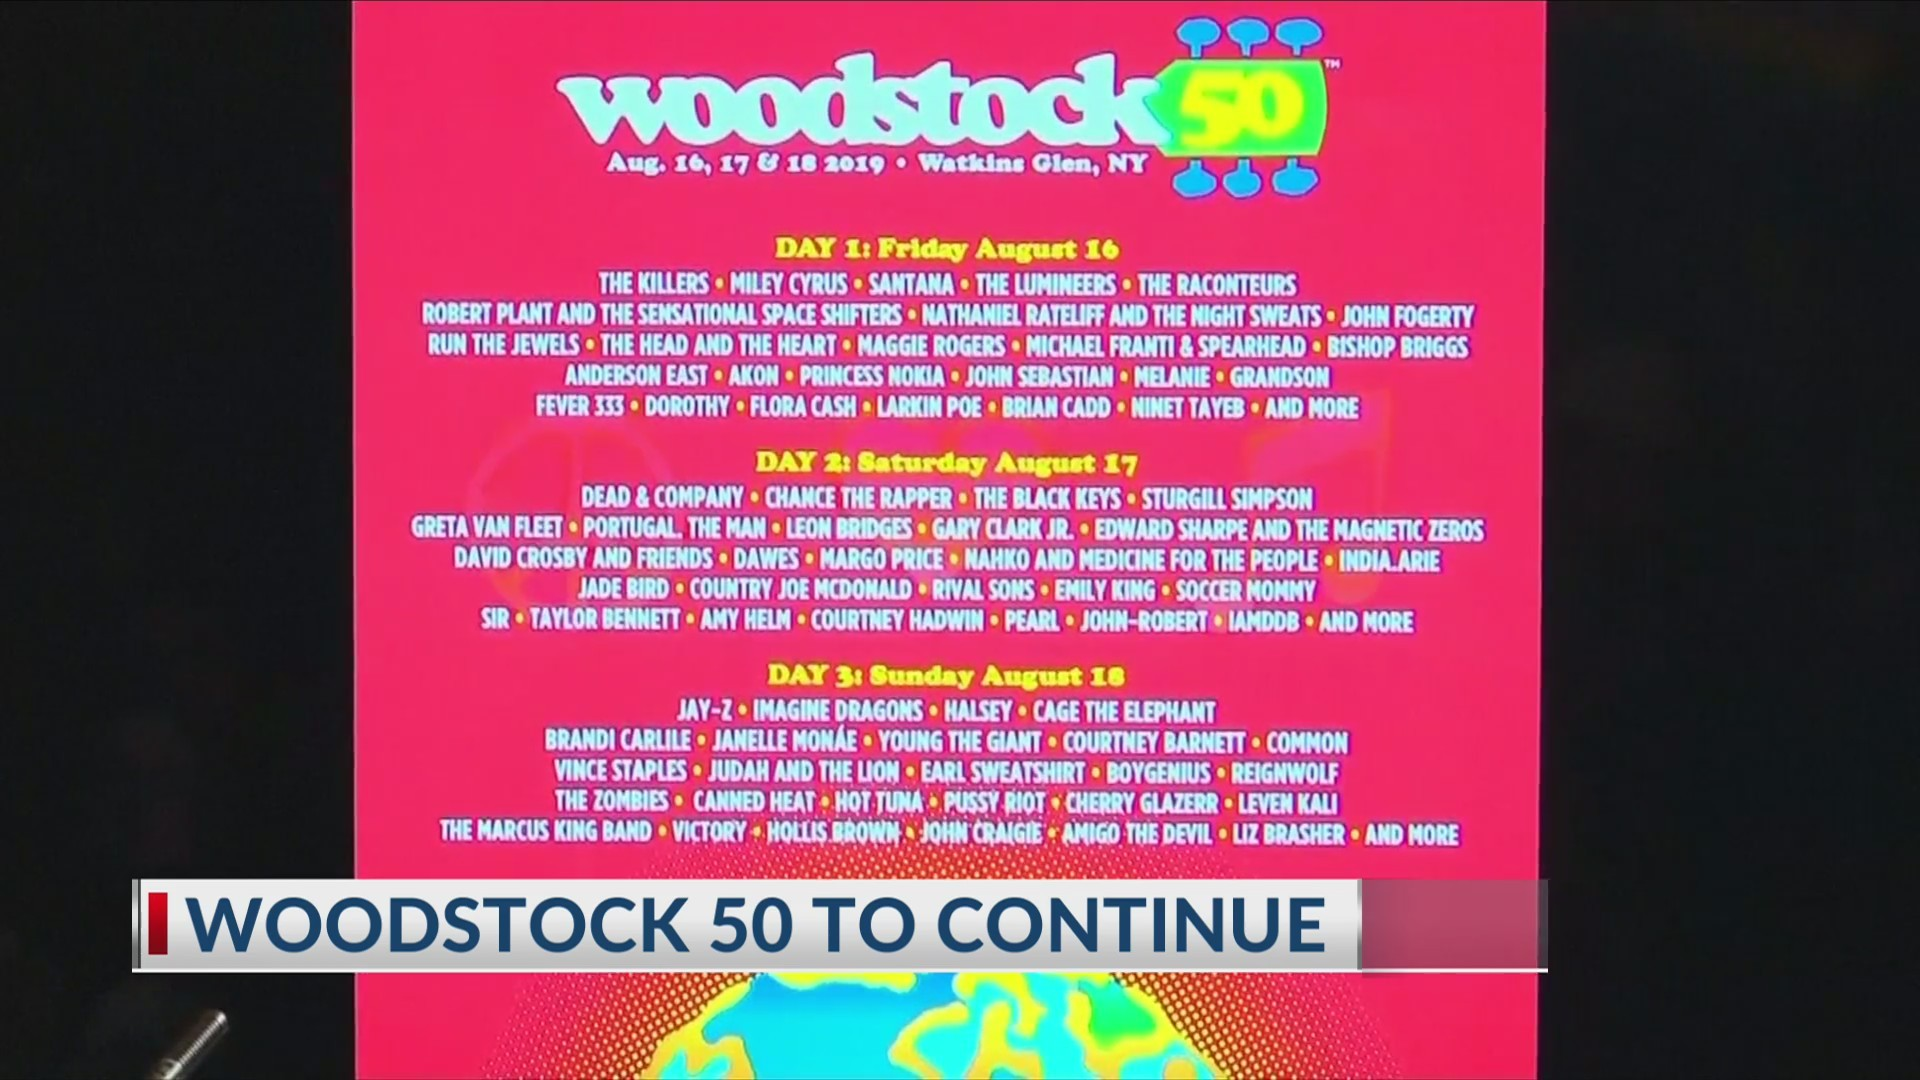 Woodstock 50: County gives update on festival plans